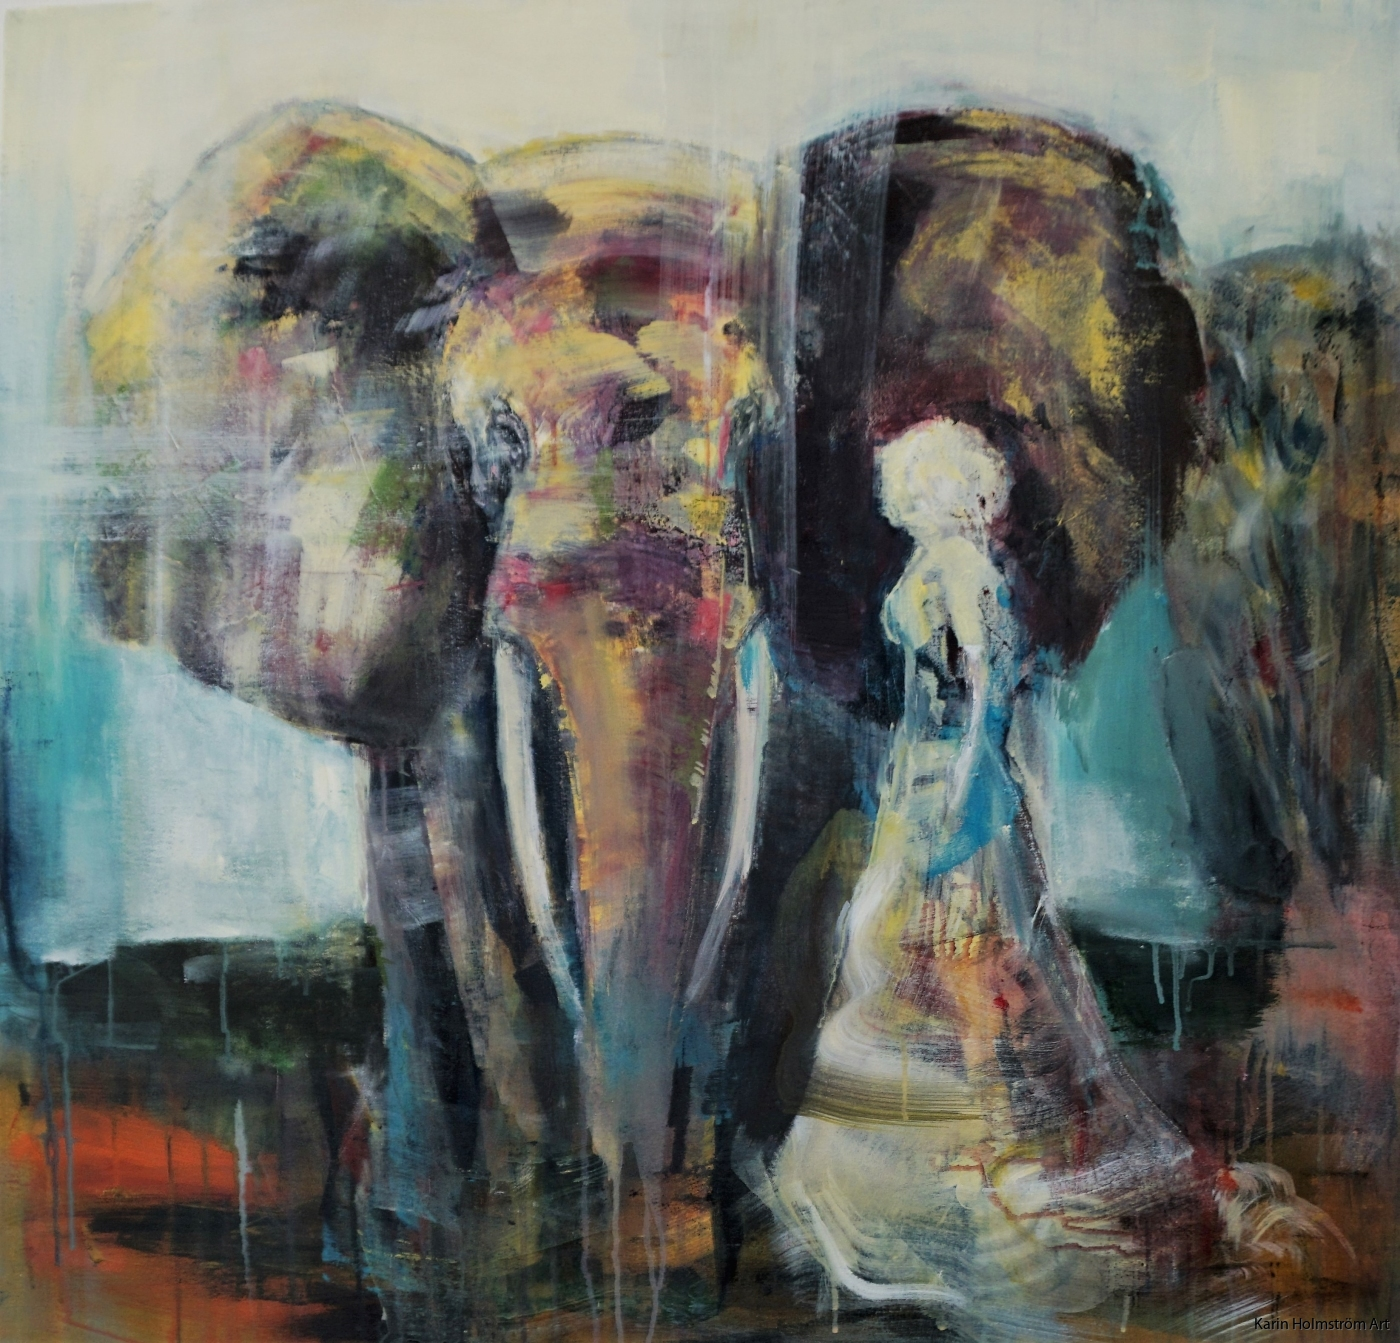 Walking with elephant bildyta ca 30x30 49ex